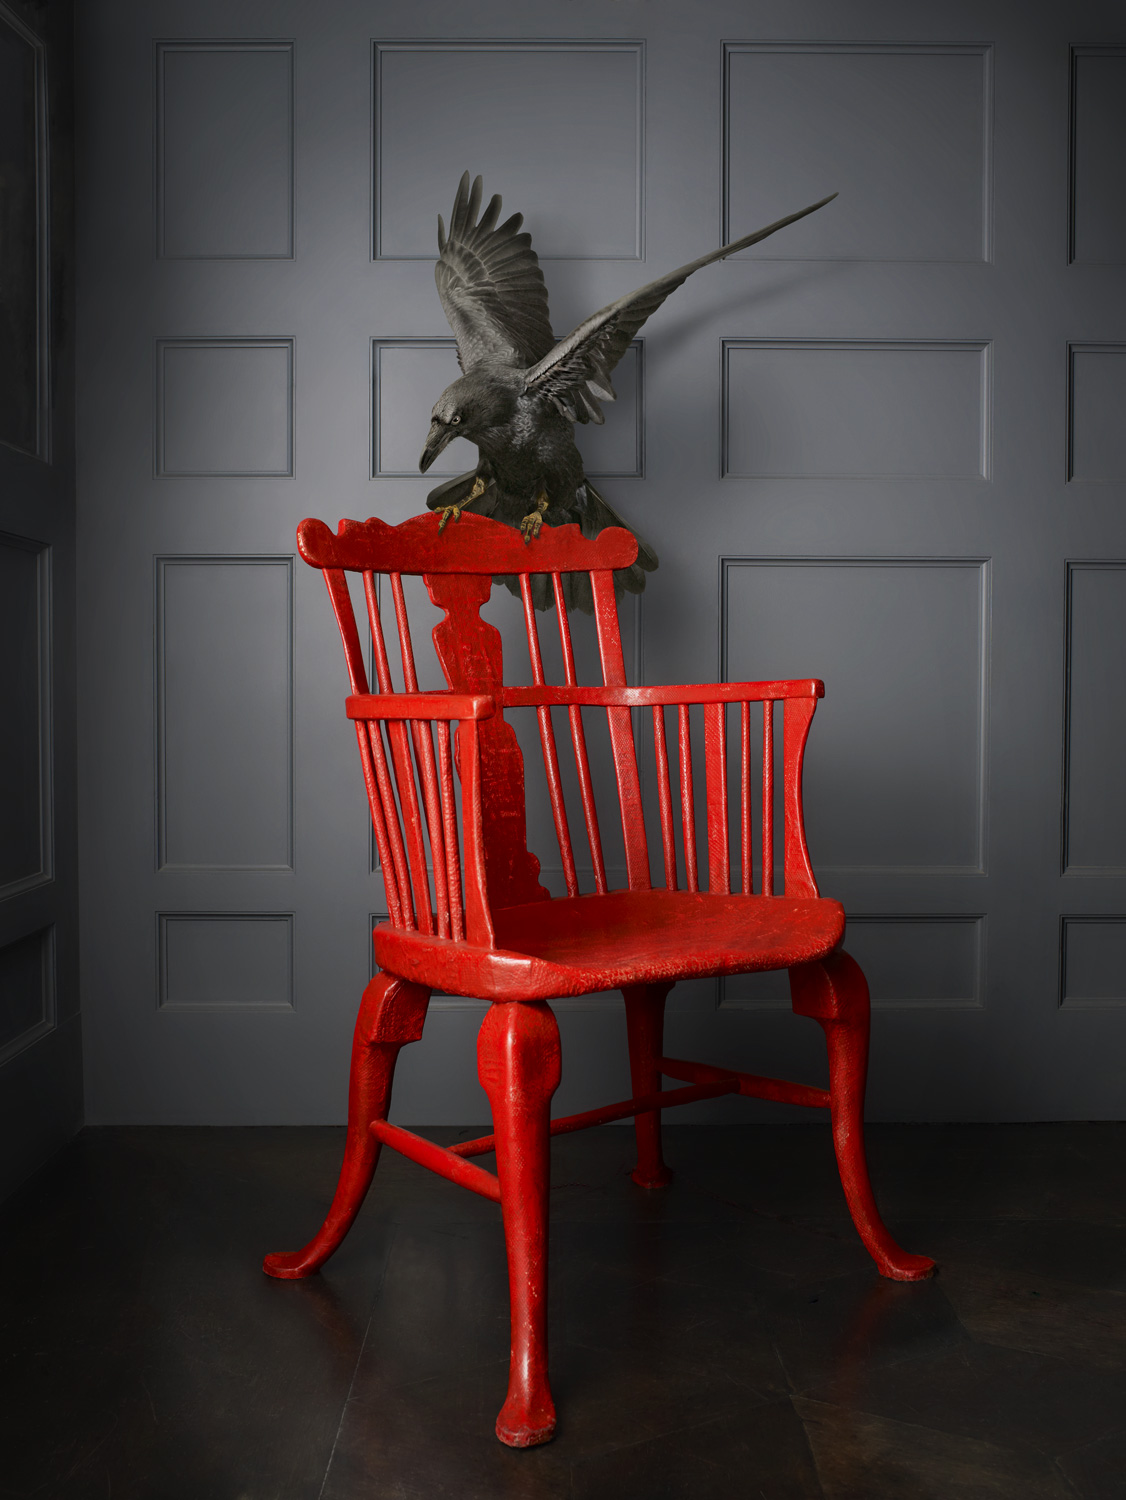 Red Chair Photography - Blackman cruz specializes in extraordinary objects the rare the magnificent the provocative and the eccentric in all their many forms